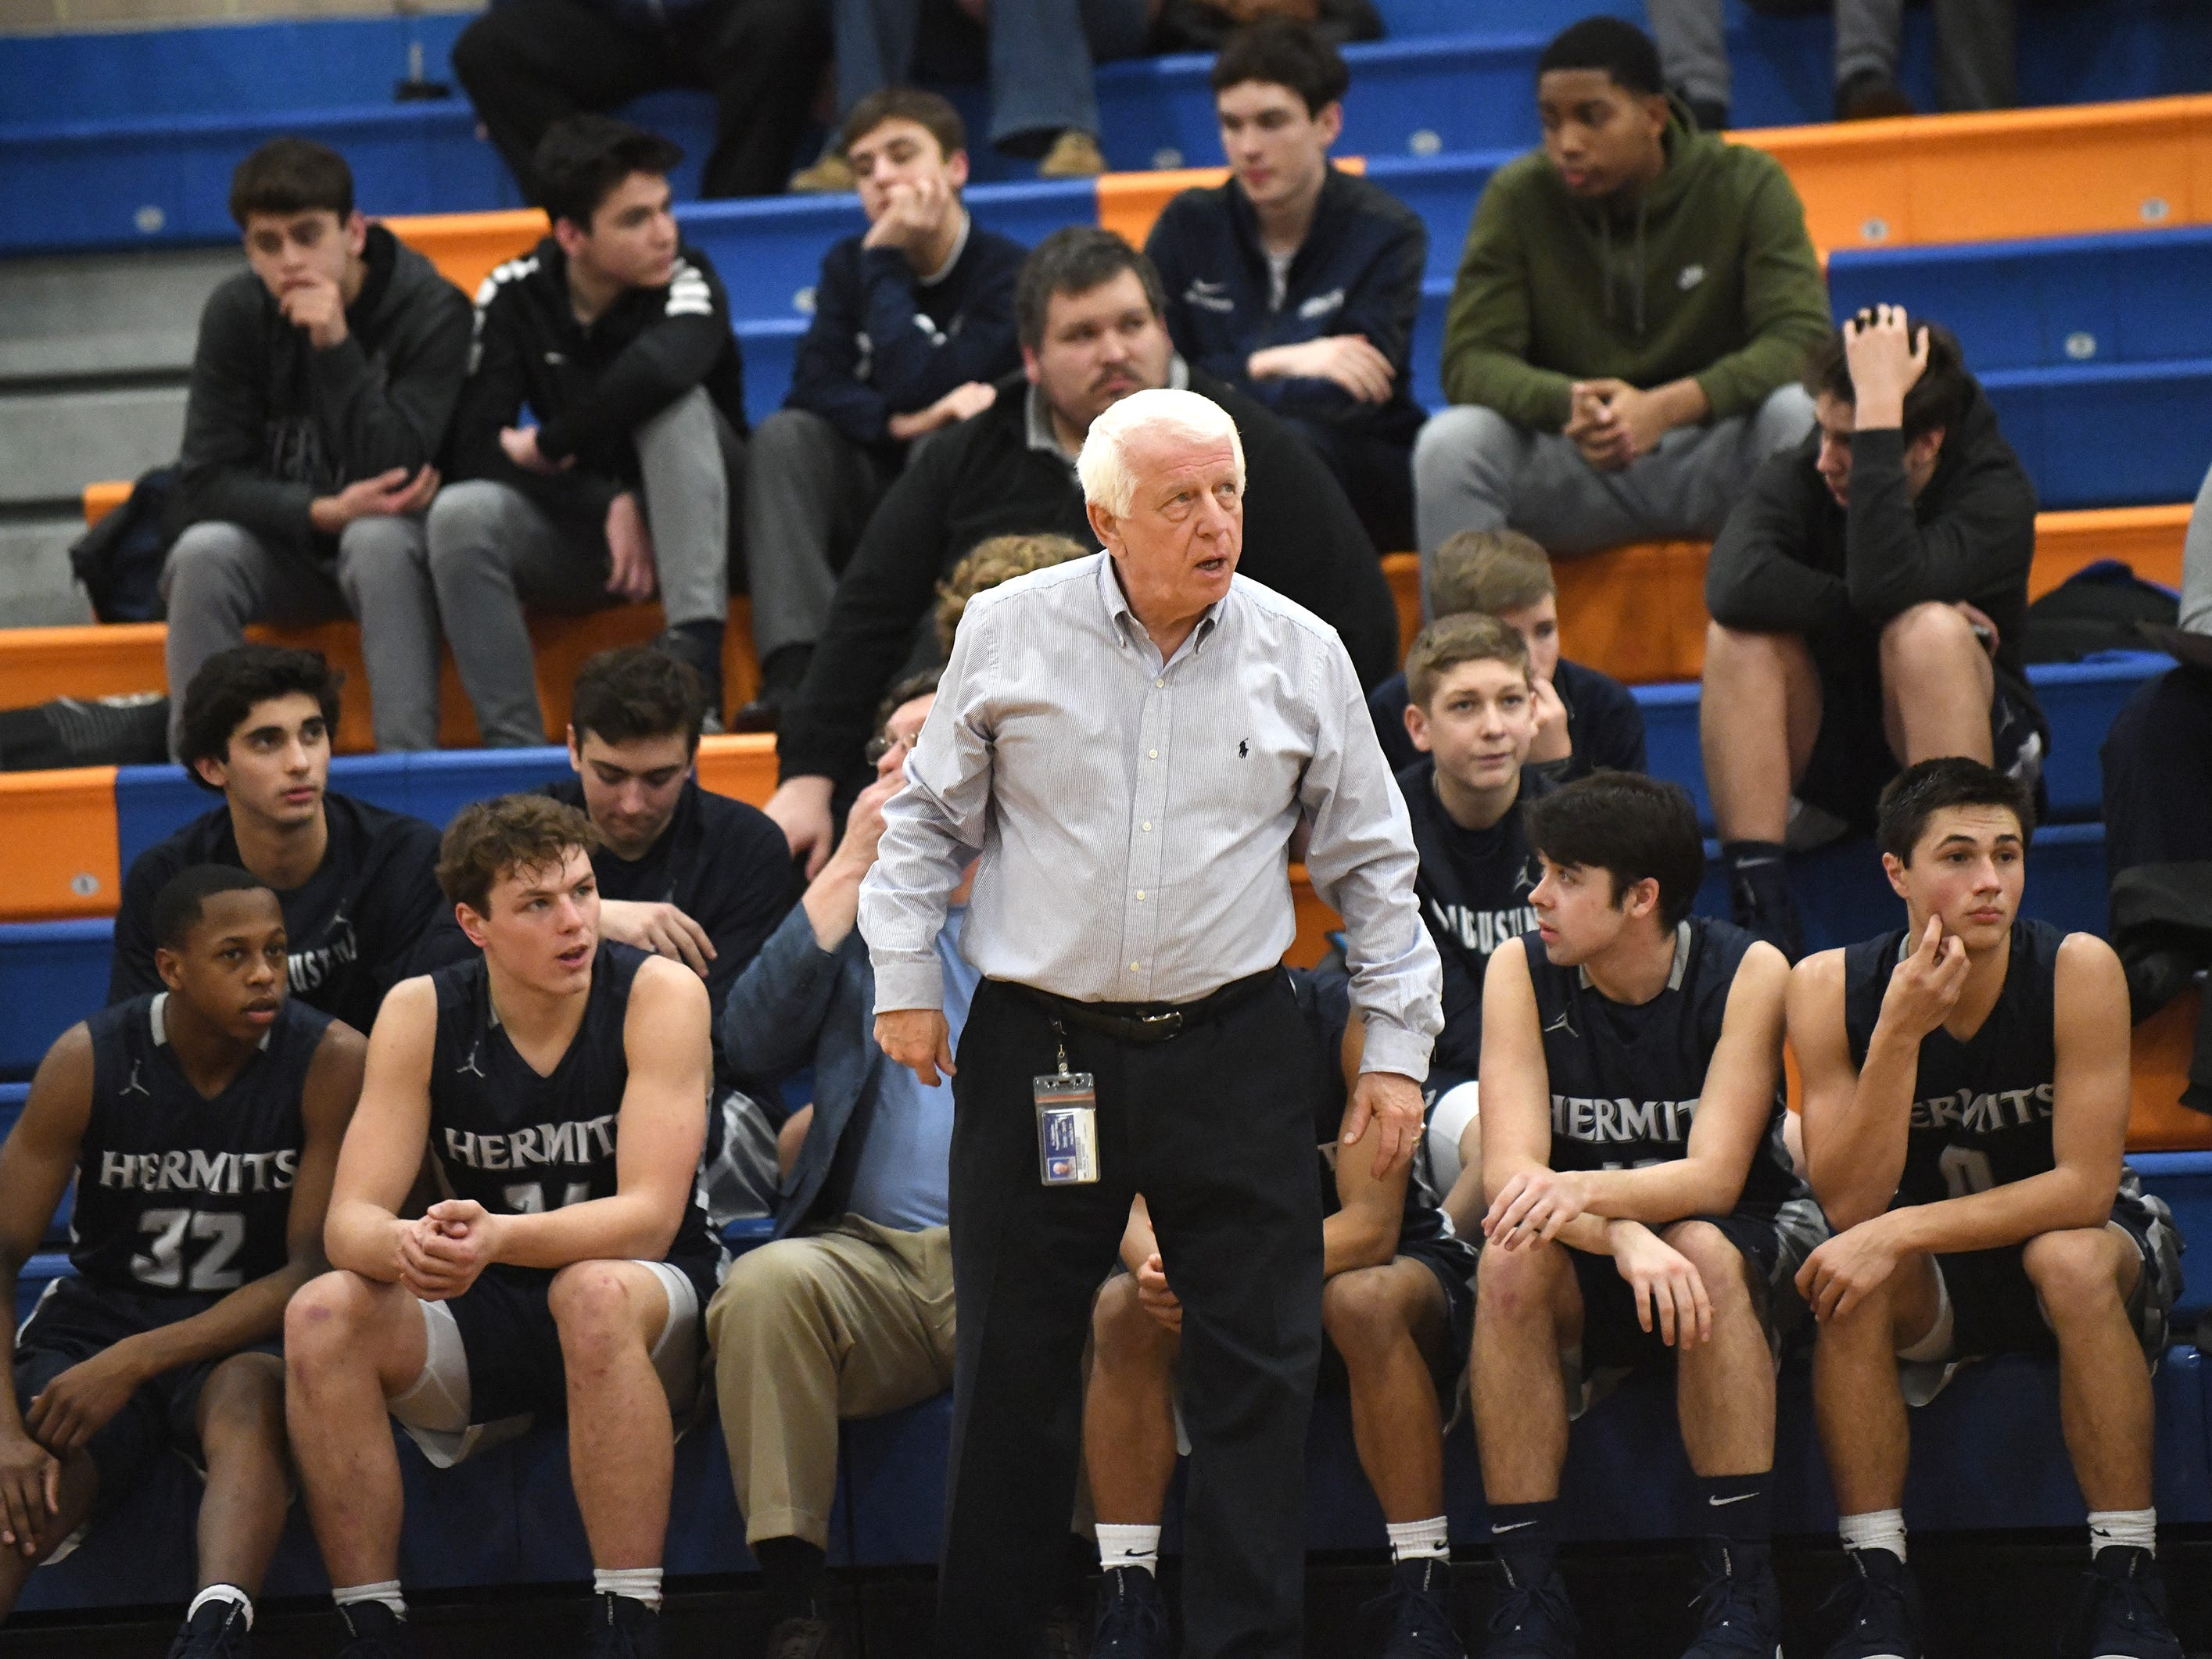 St. Augustine's head coach Paul Rodio stands near the team during a game against Millville. The Hermits topped the Thunderbolts 66-53 on Friday, Jan. 18, 2019.